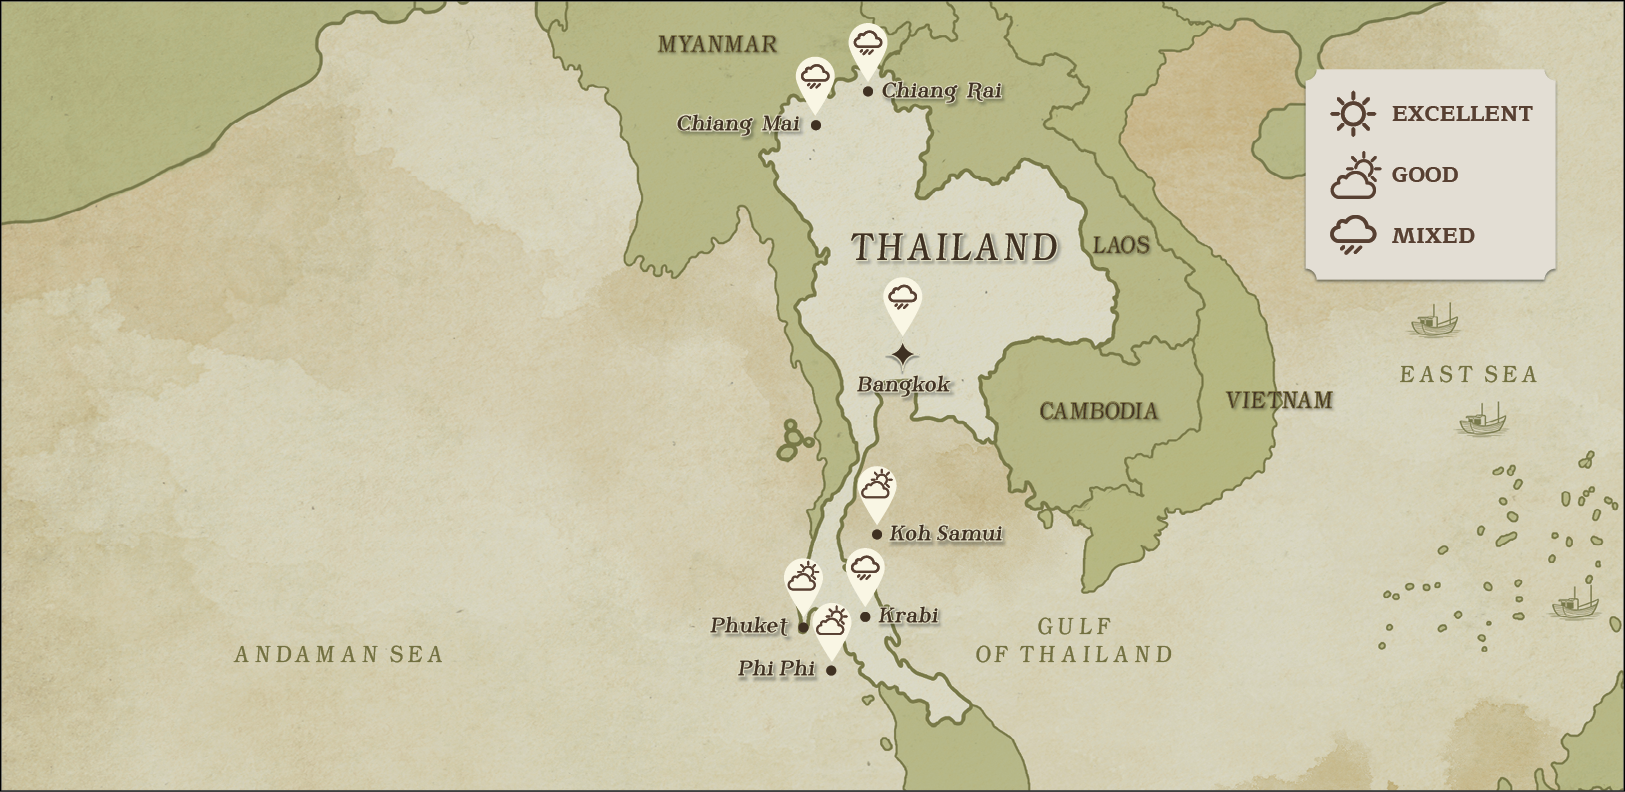 THAILAND WEATHER MAP May